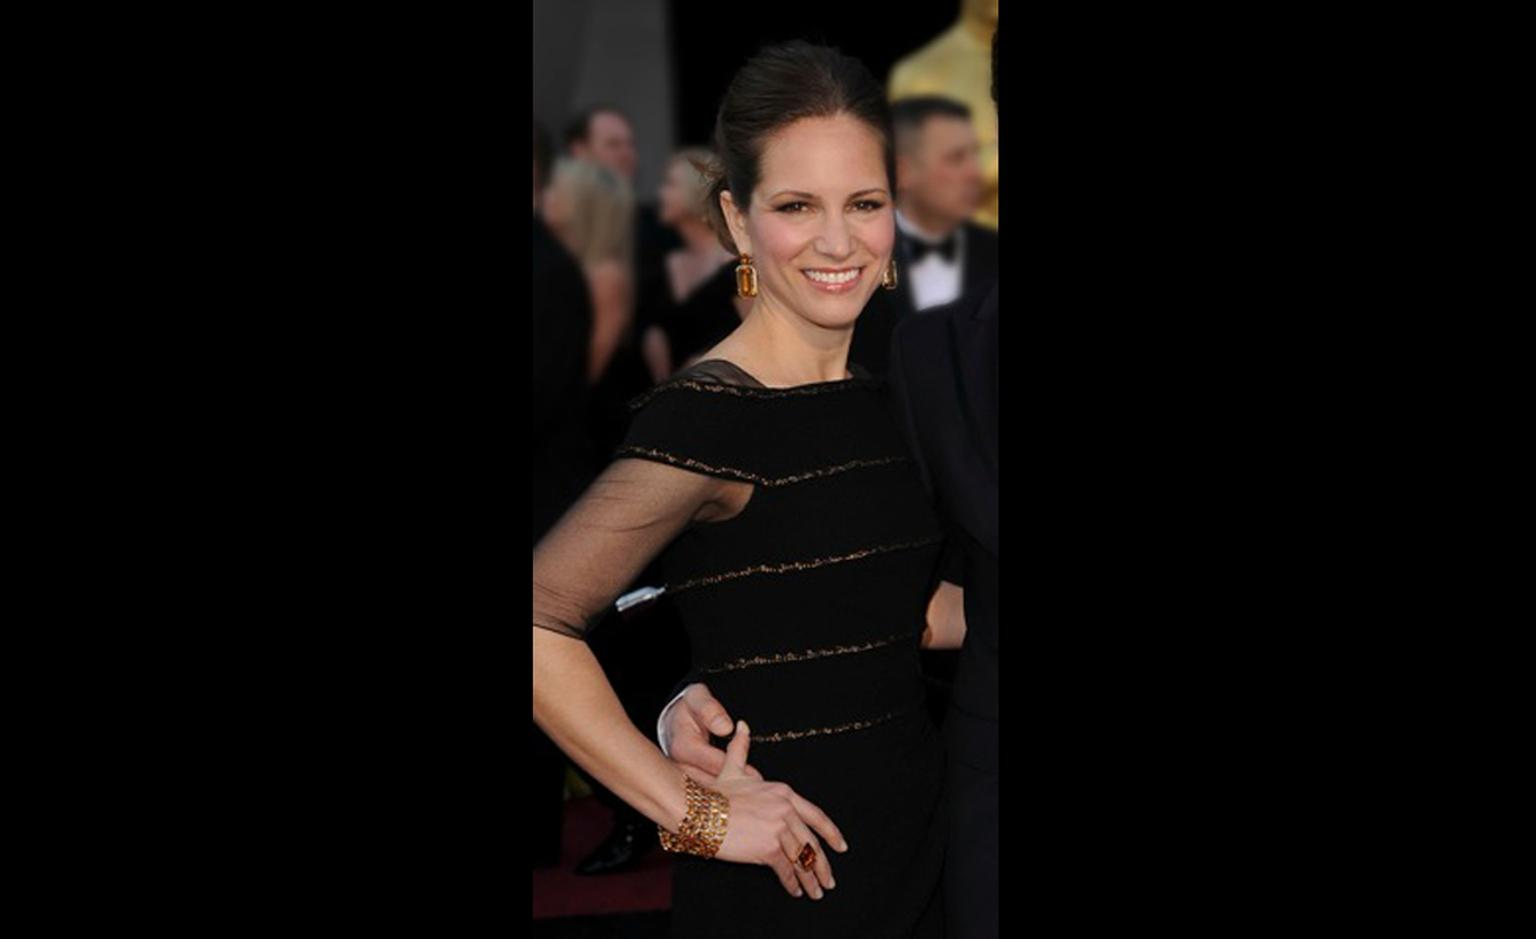 SUSAN DOWNEY wears Style of Jolie citrine tablet earrings, ring and bracelet designed by Angelina Jolie and created by Robert Procop. Proceeds from the sale of these jewels go towards Angelina's charity The Education Partnership for Children of ...